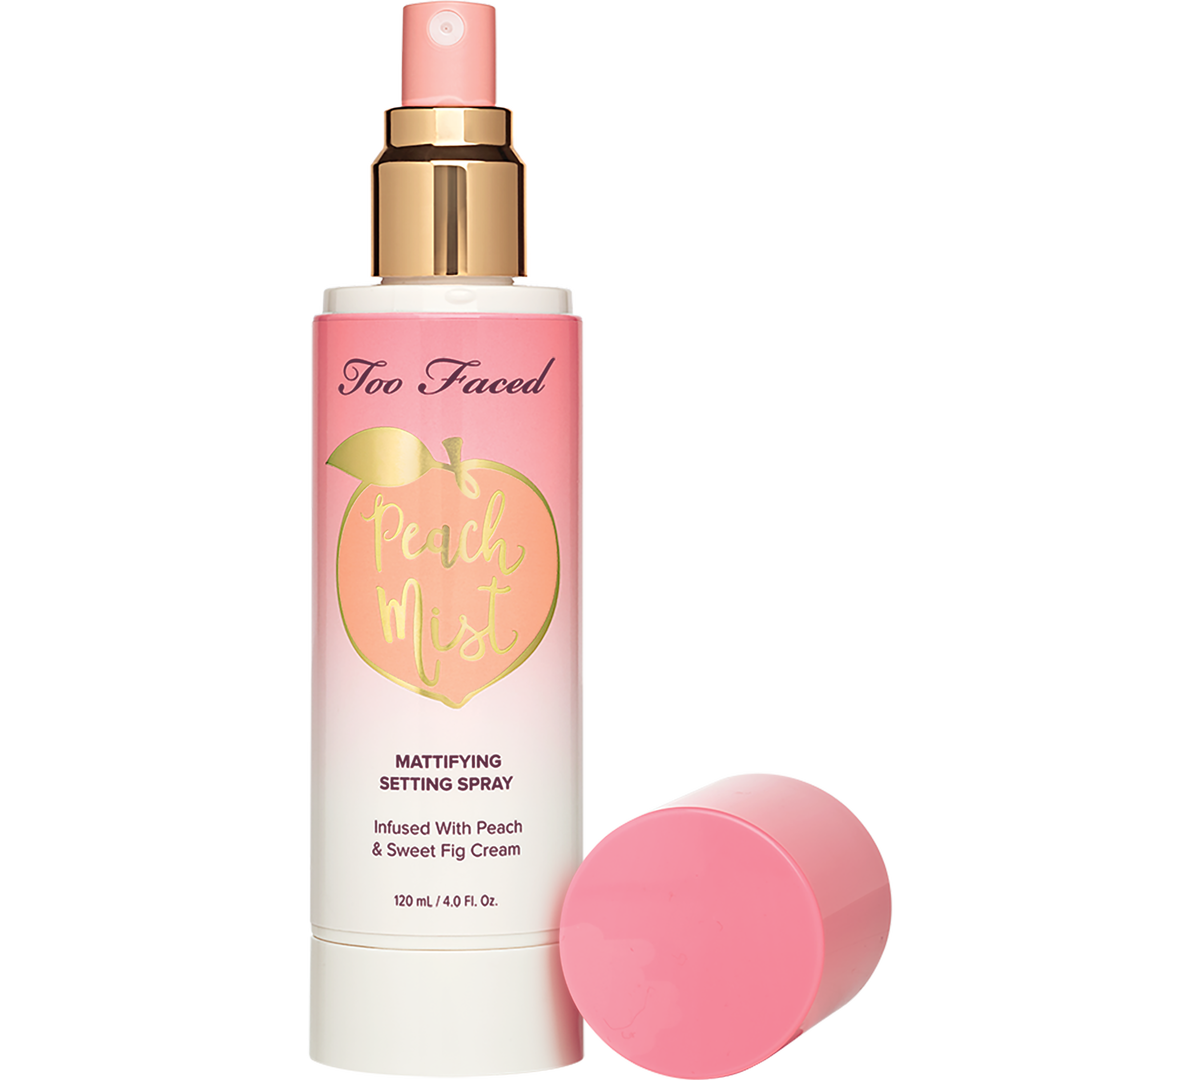 TOO FACED Peach Mist Setting Spray